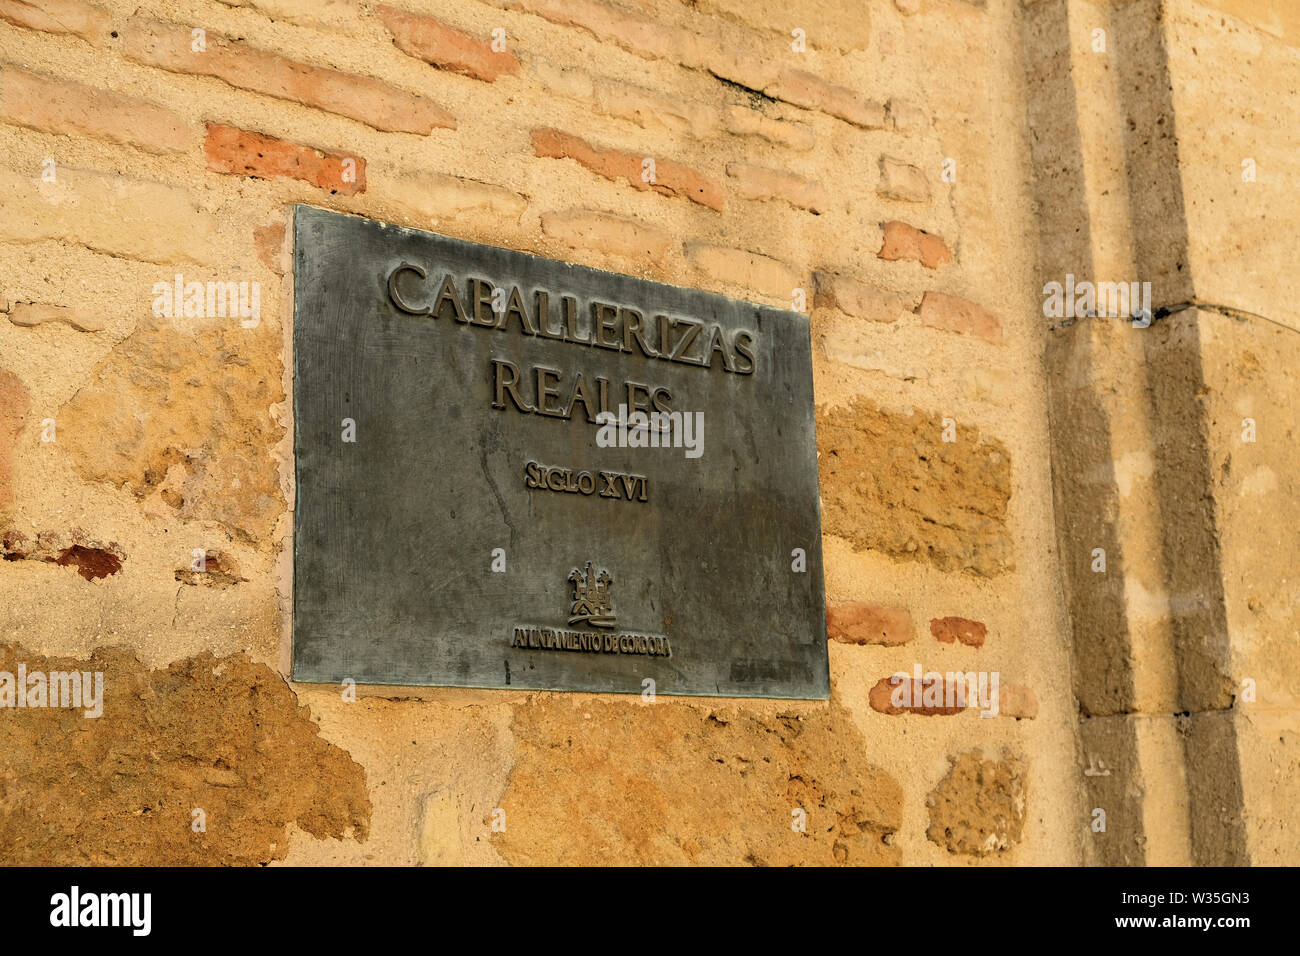 Sign on a brick wall outside the royal stables or Caballerizas Reales in Cordoba, Andalusia, Spain indicating their 16th Century origin. - Stock Image